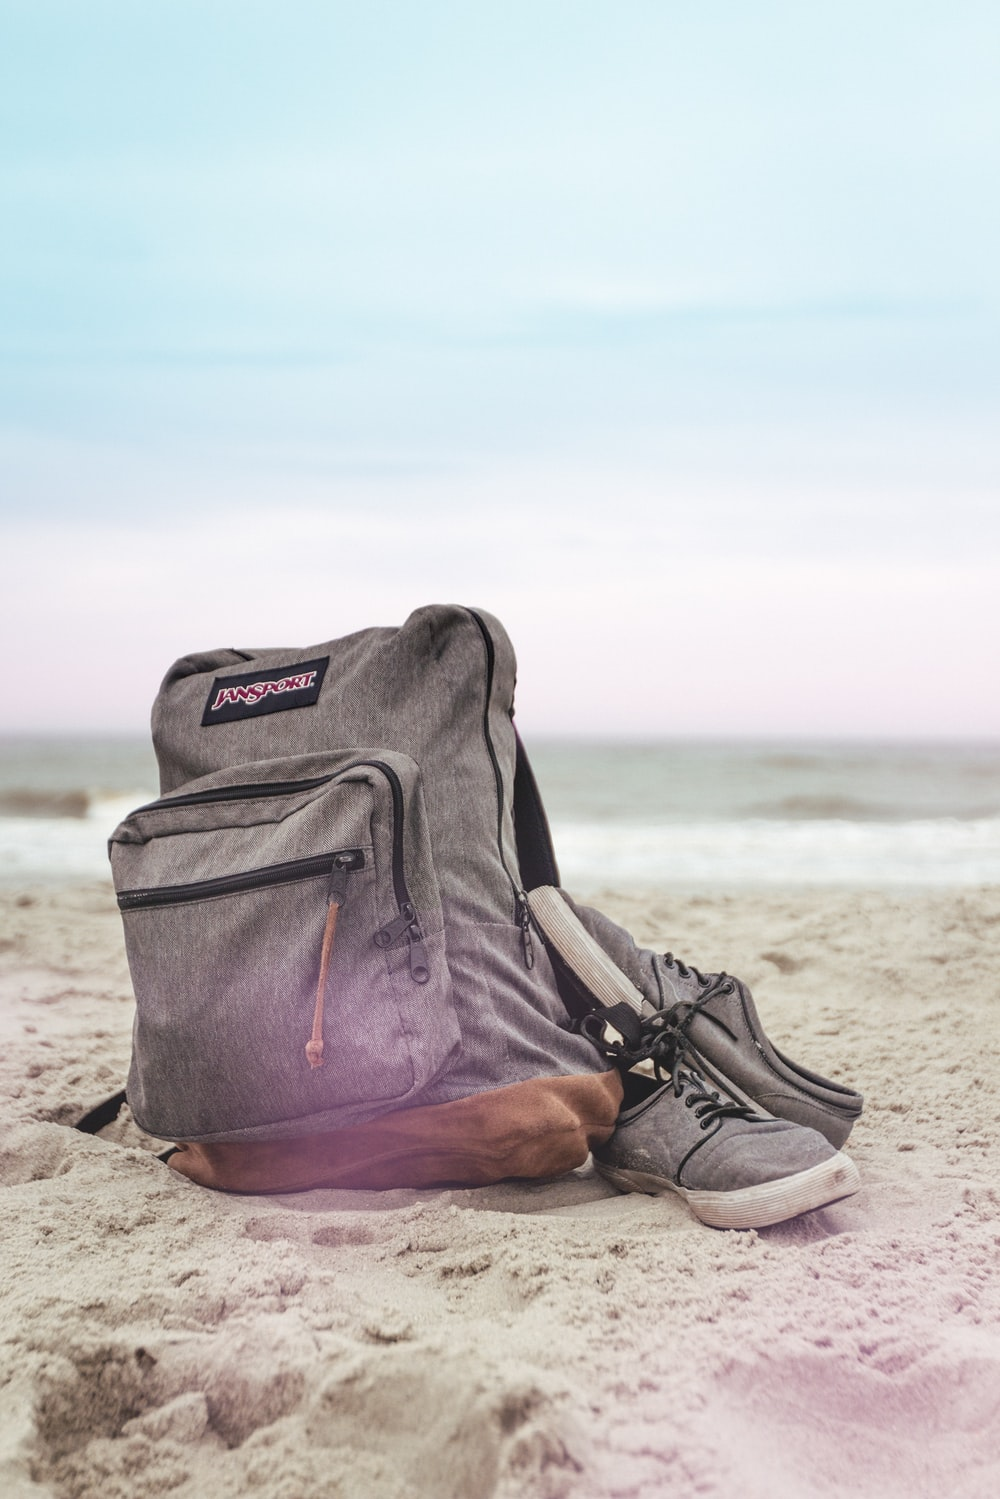 black and red nike backpack on brown sand near body of water during daytime